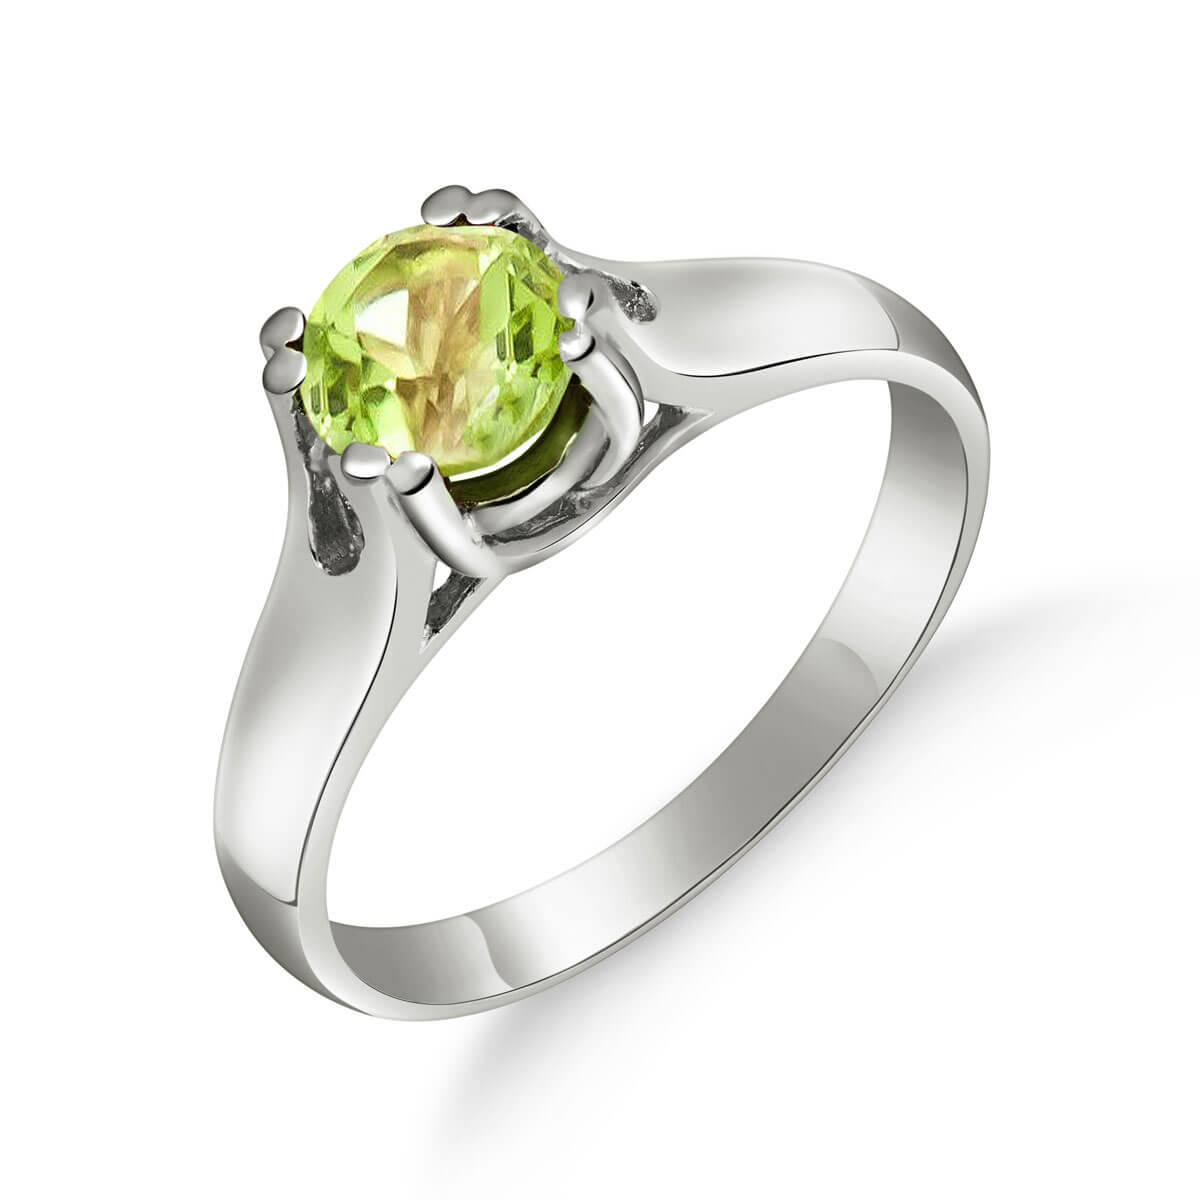 Peridot Solitaire Ring 1.1 ct in 18ct White Gold